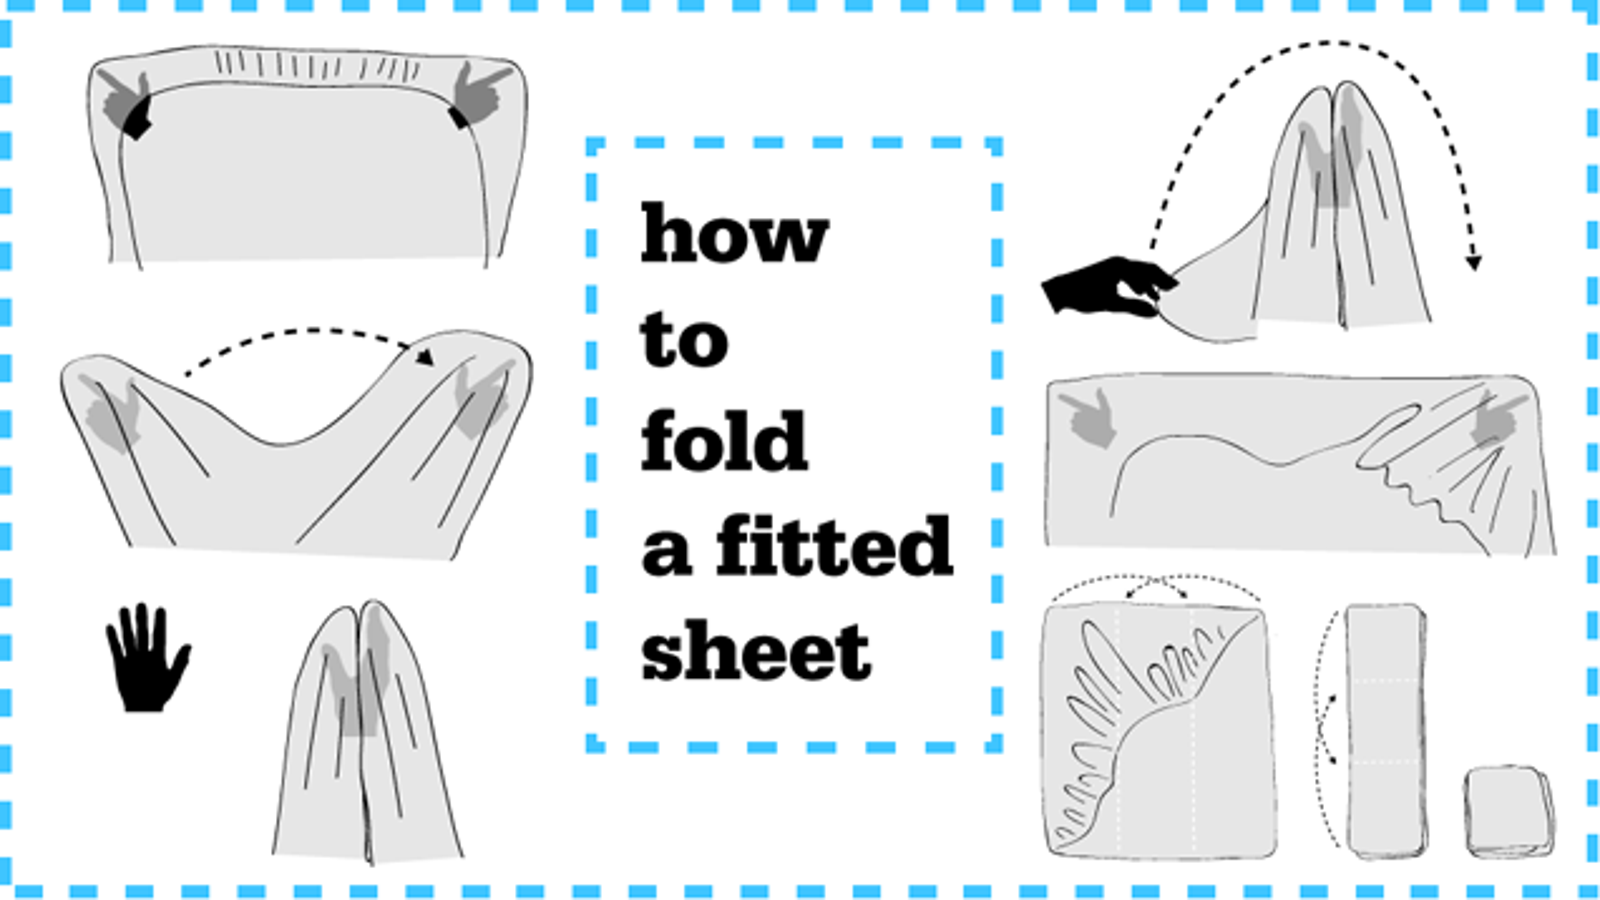 folding a fitted sheet Sorcery And Witchcraft: How To Fold A Fitted Sheet folding a fitted sheet